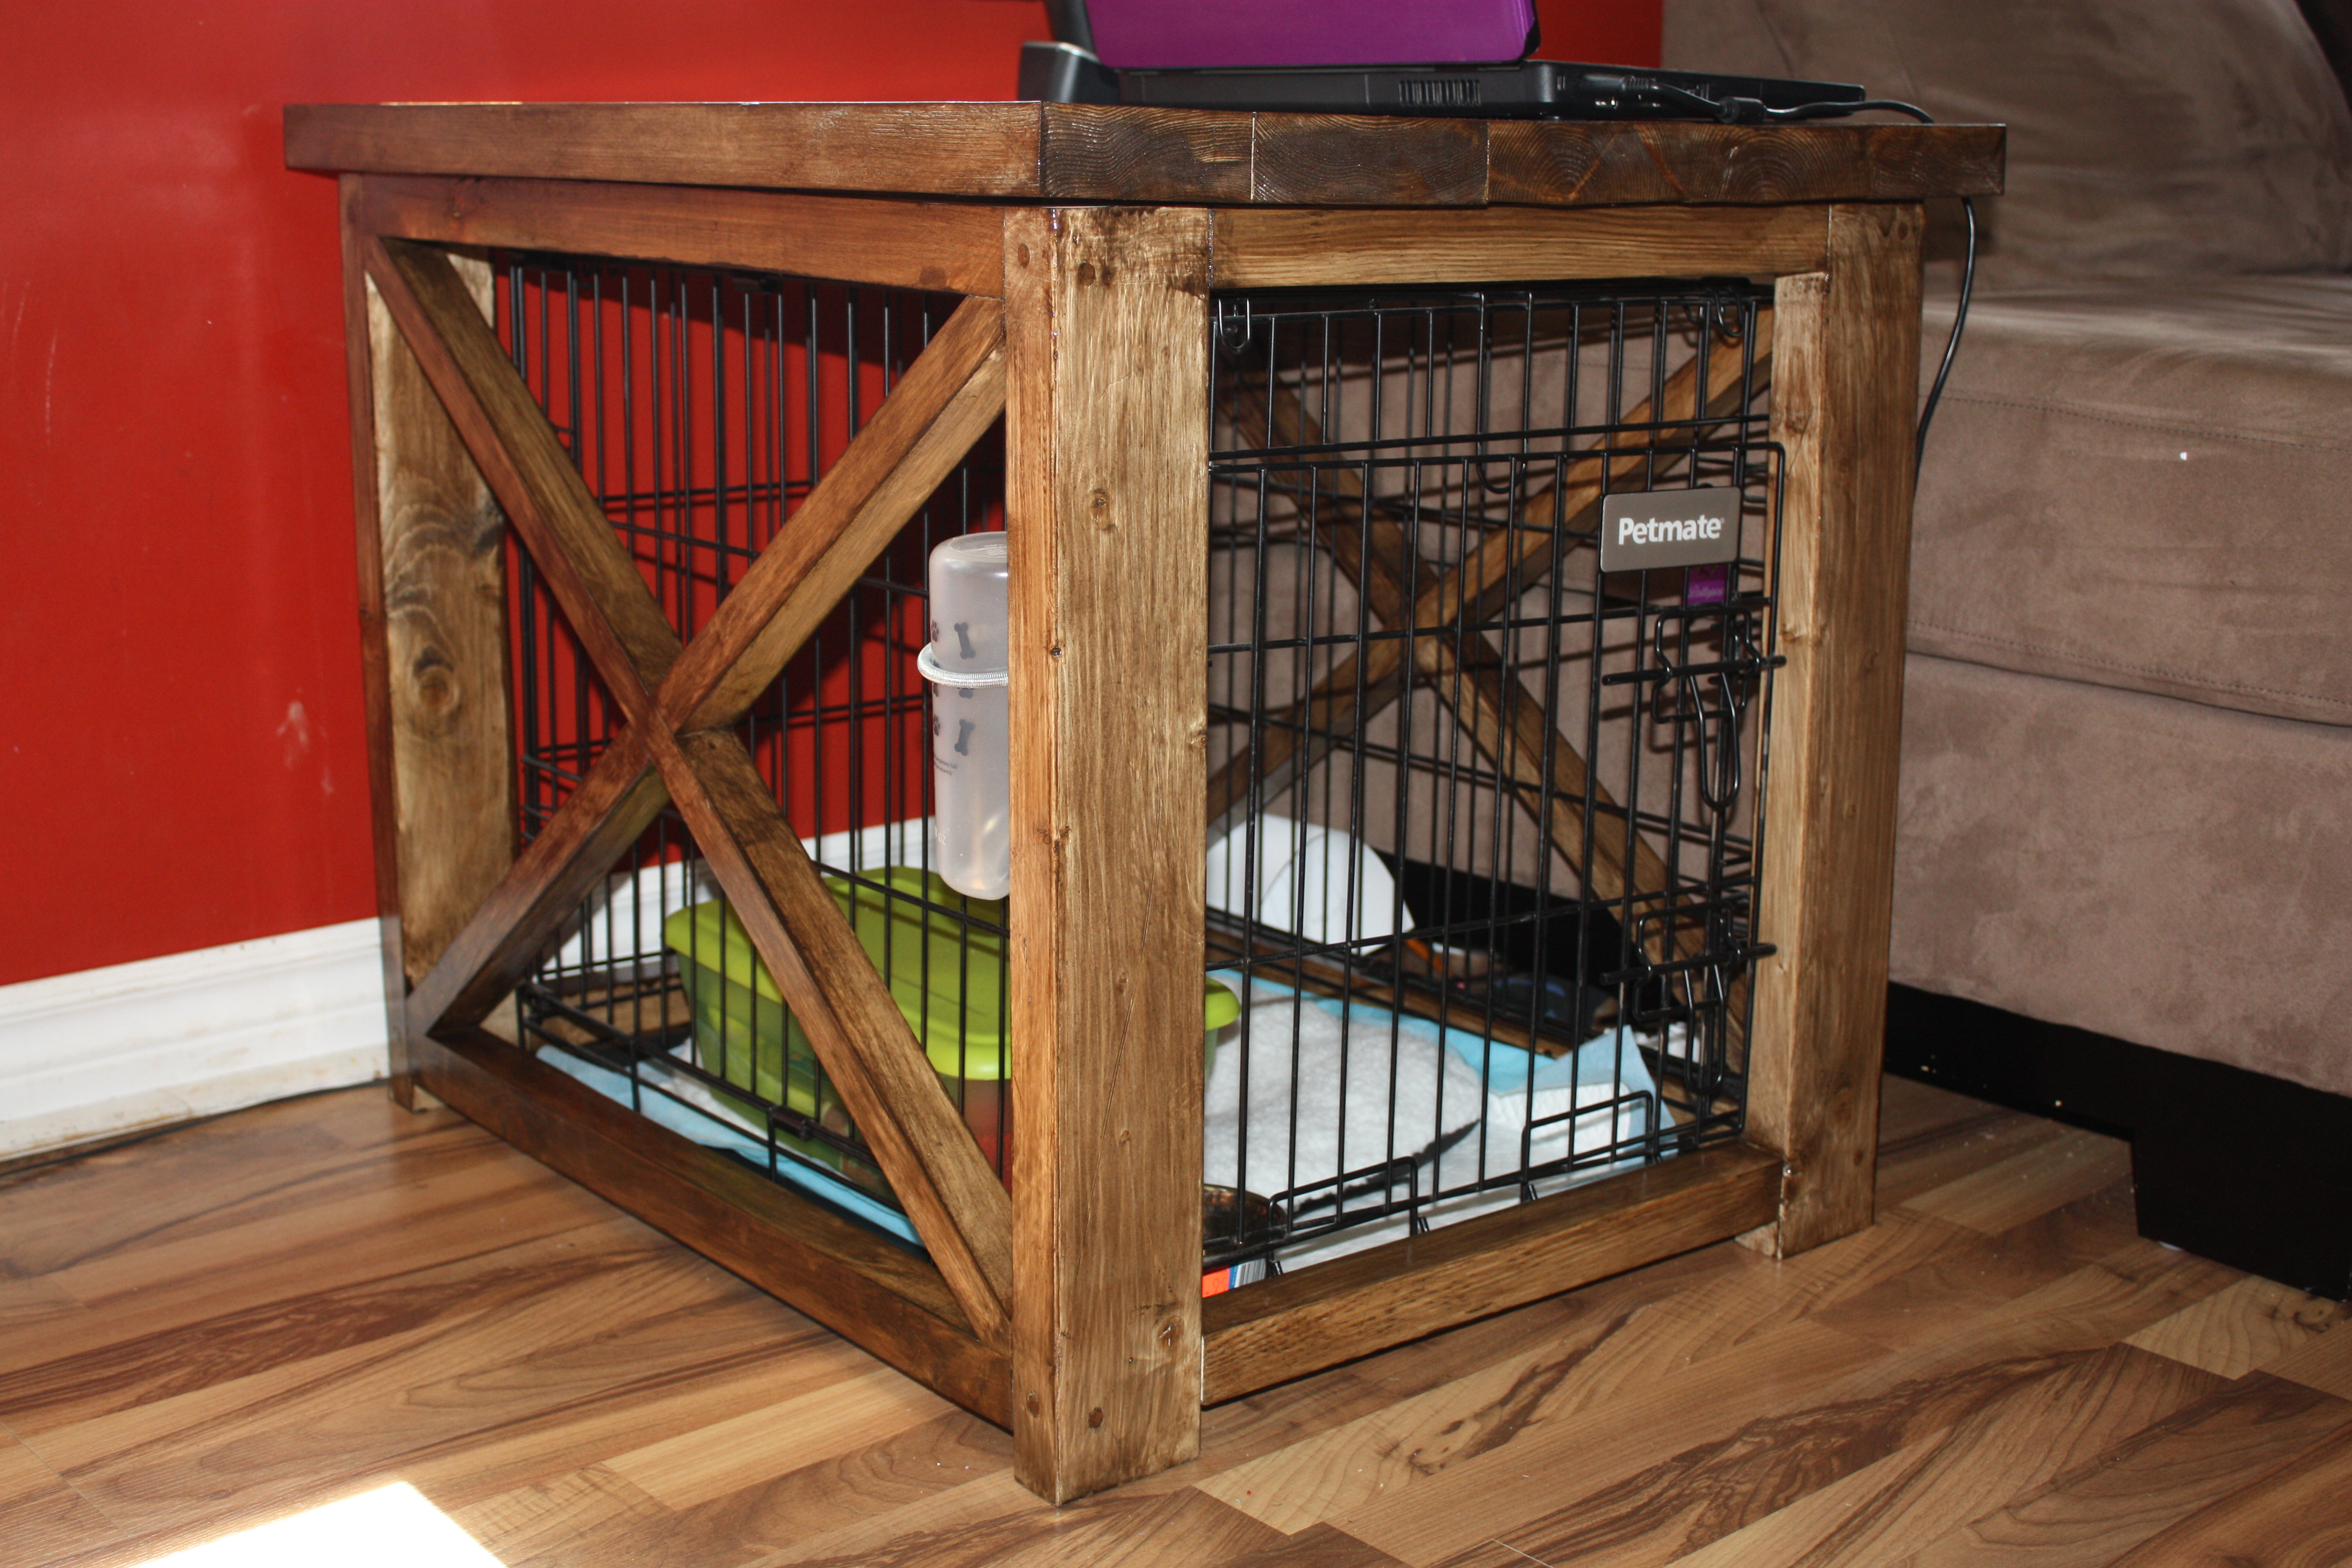 Best ideas about Dog Crate Furniture DIY . Save or Pin Ana White Now.